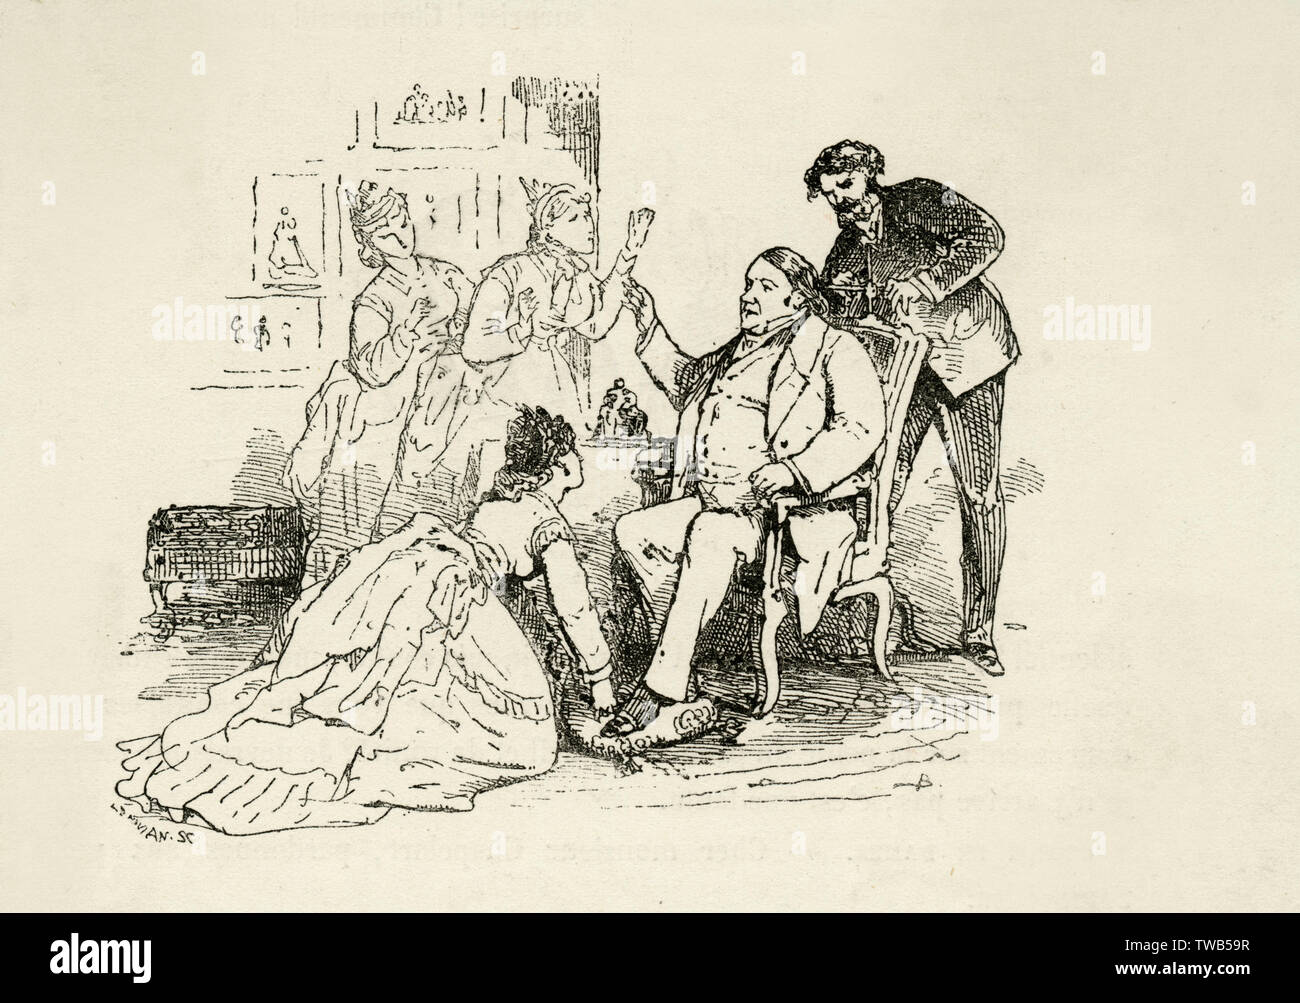 A man is shown being assisted by three women and another man in preparing to have his portrait photographed. One woman appears to be adjusting his feet or cleaning his shoes, while the man can be seen adjusting his head so that it remains in one position, which is necessary due to the long exposure times of cameras.     Date: 19th century - Stock Image